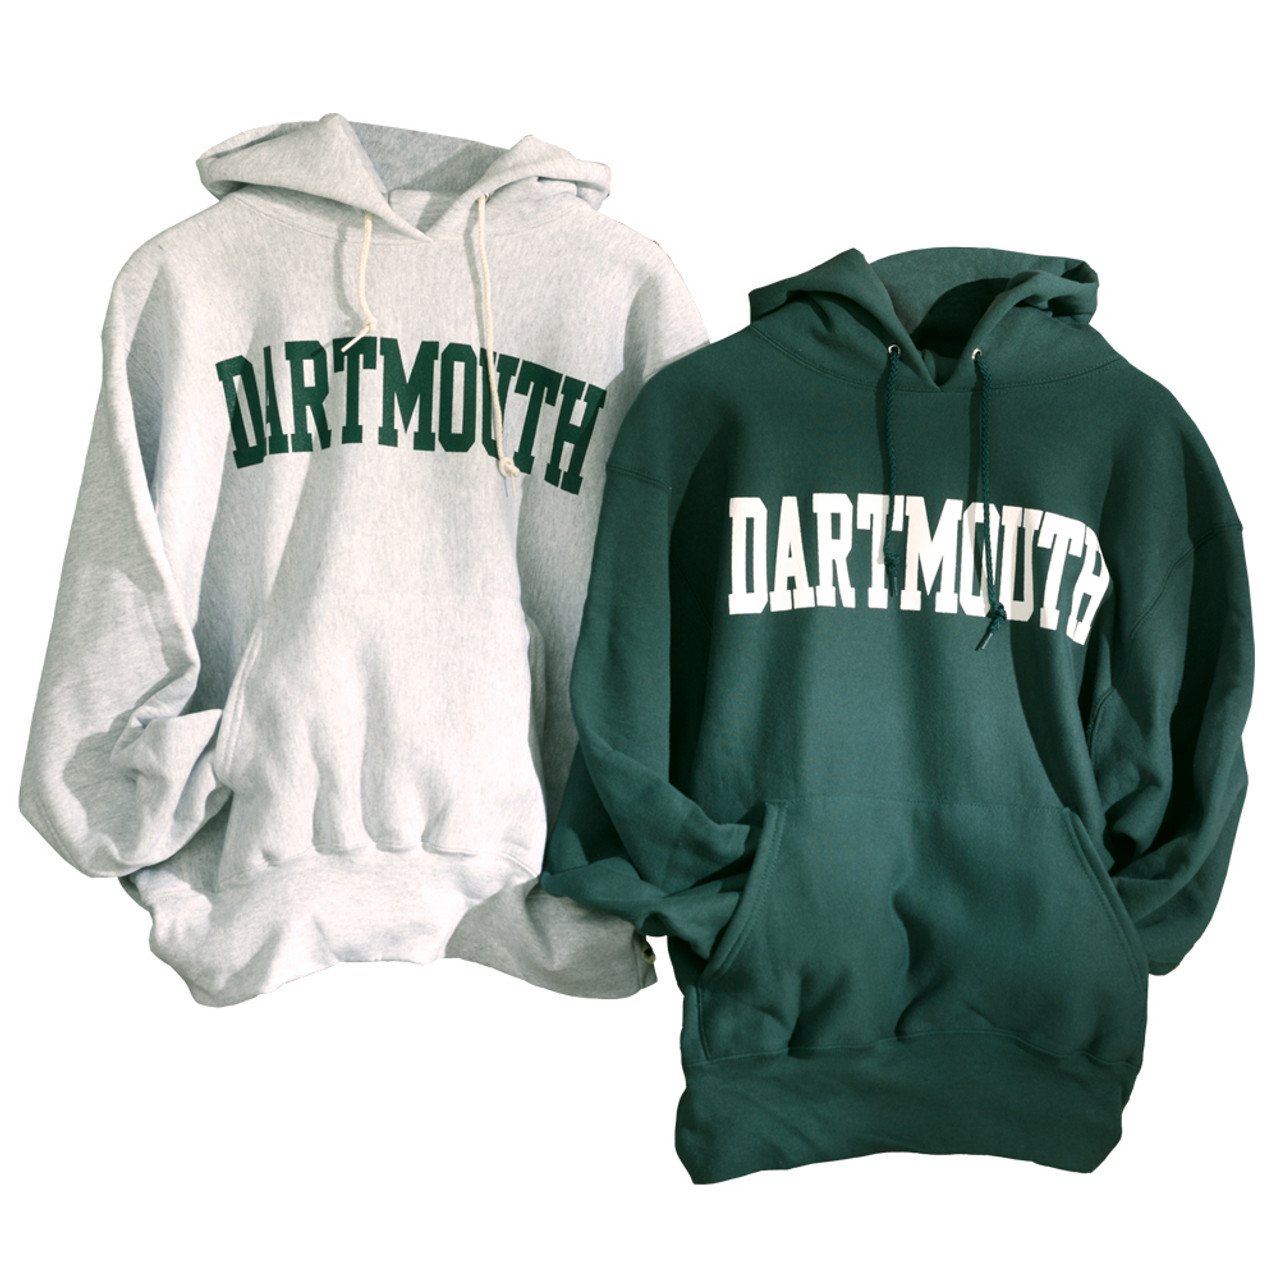 825c63c66a Dartmouth Hooded Sweatshirts. Dartmouth College Sweatshirt f